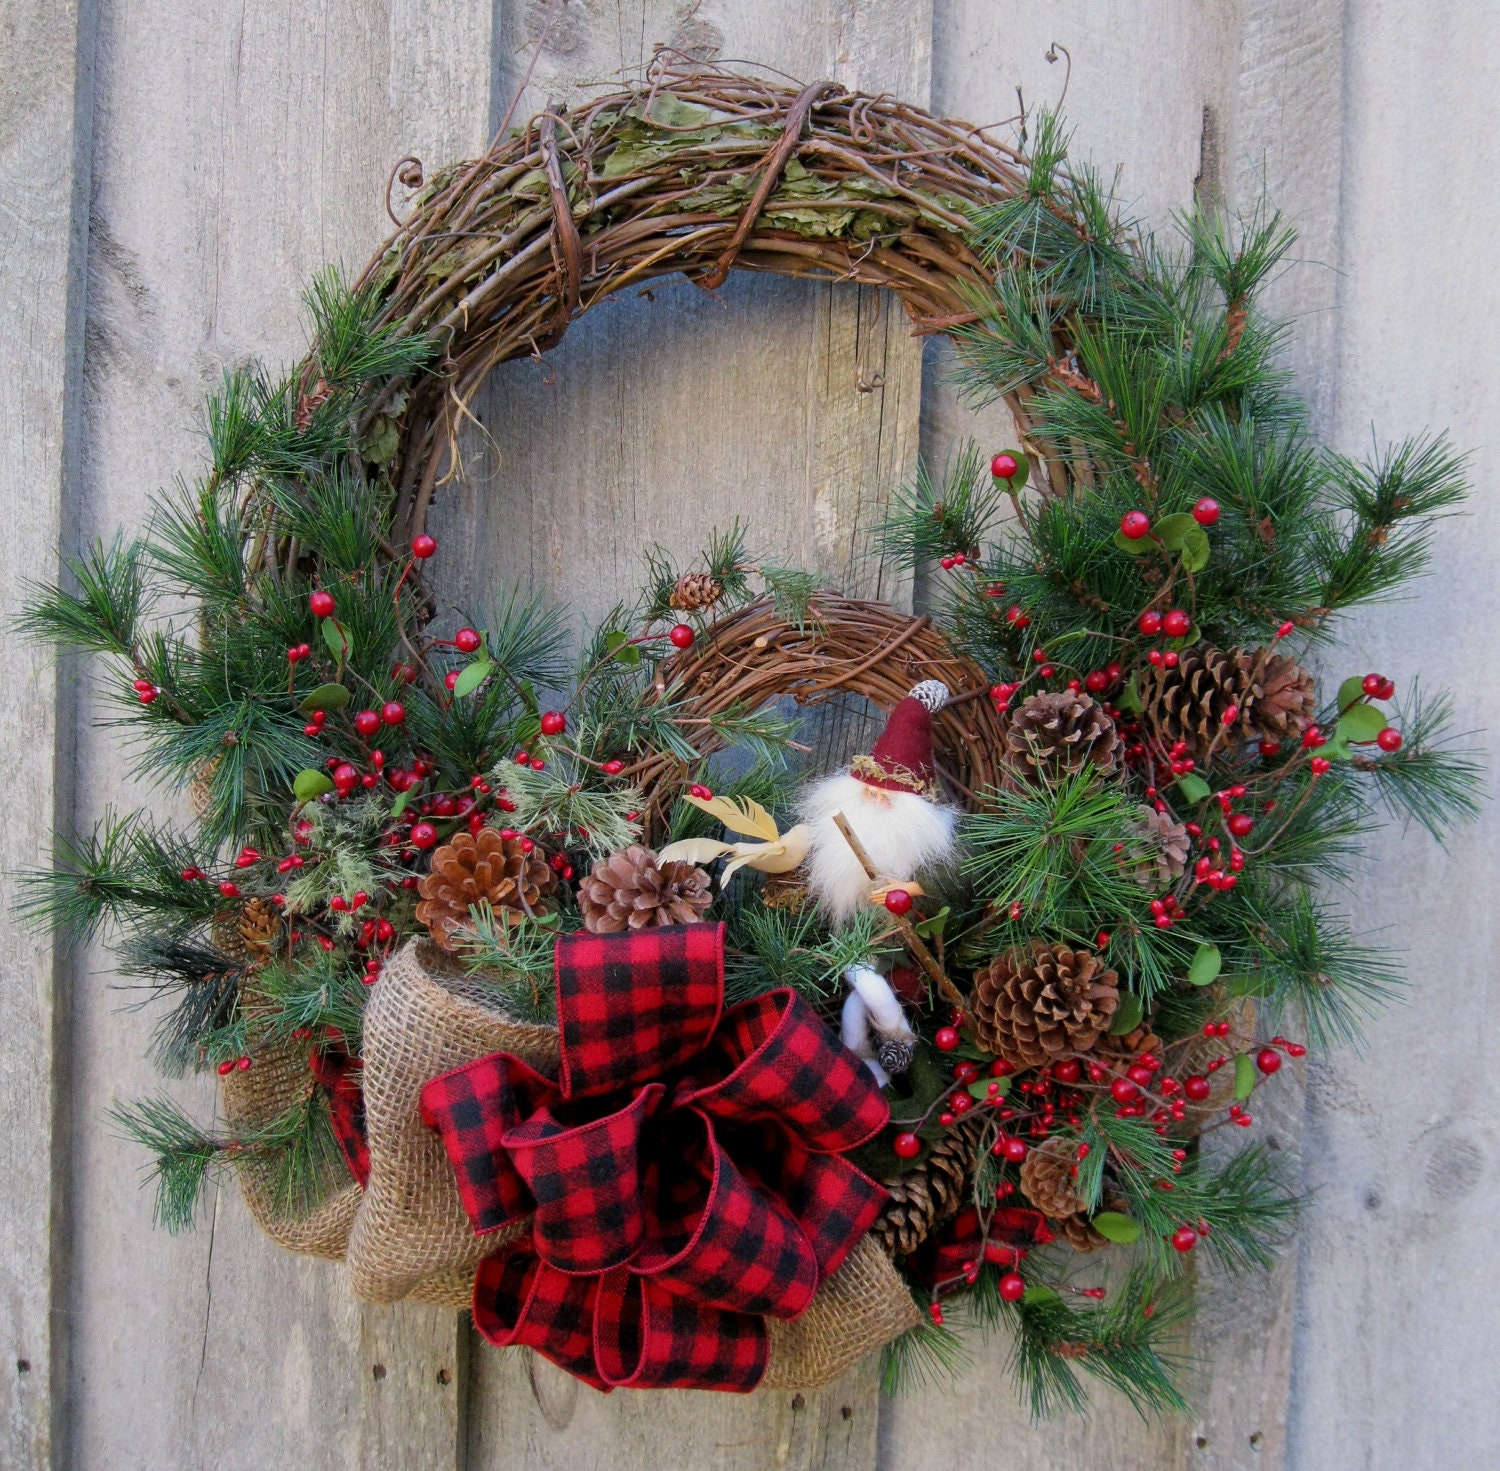 Christmas Wreath Holiday D Cor Woodland Christmas Rustic